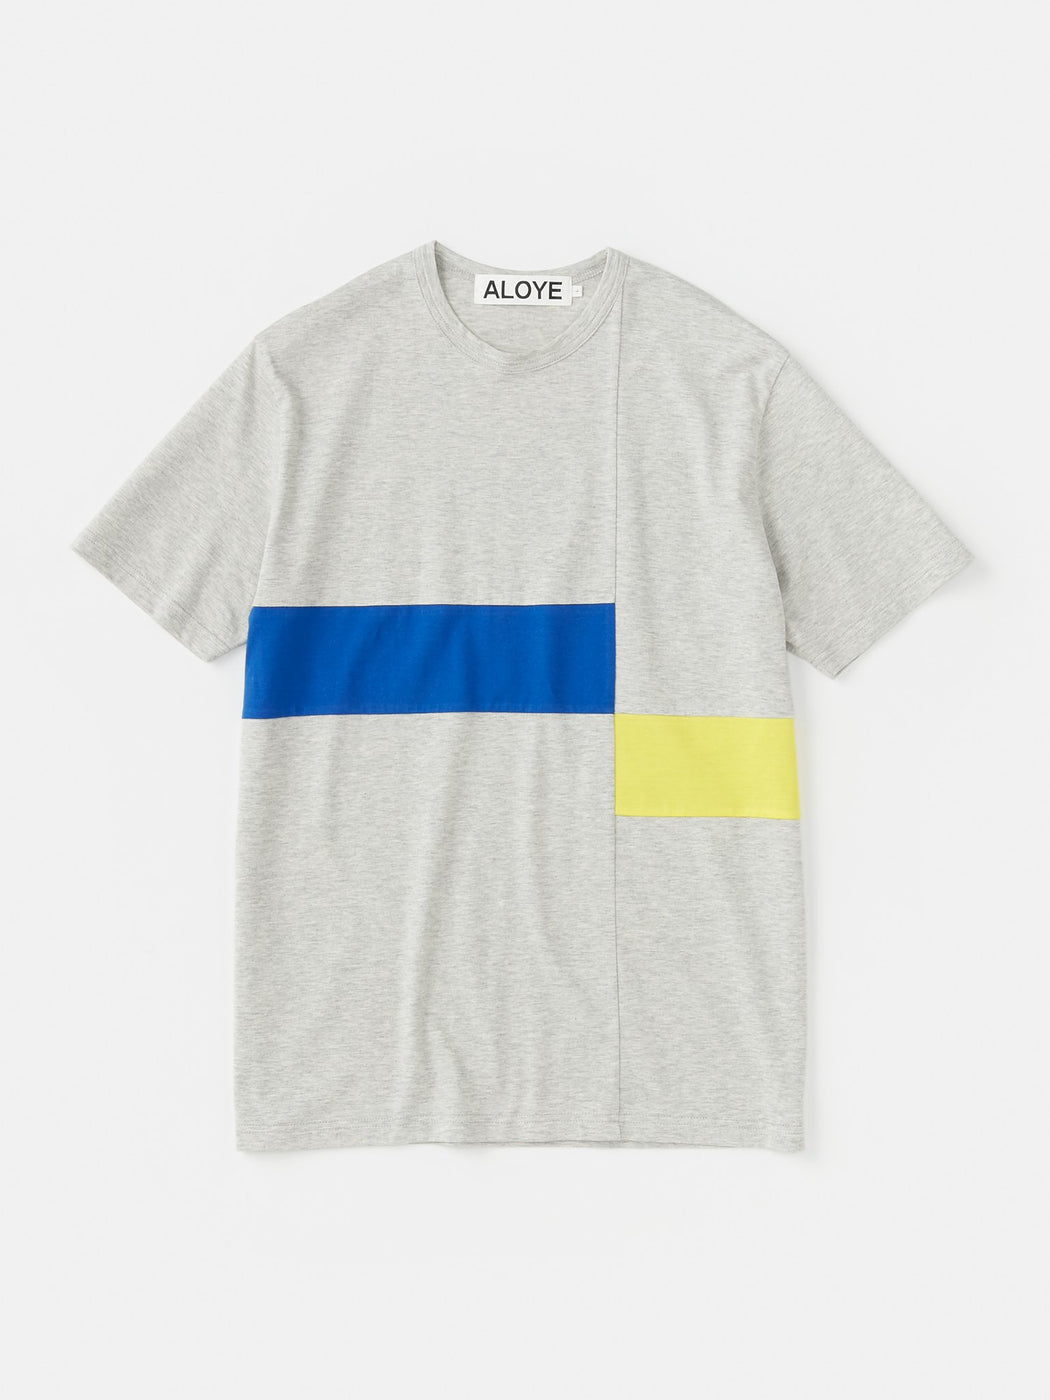 ALOYE Color Block Short Sleeve T-shirt Gray-Blue-Yellow